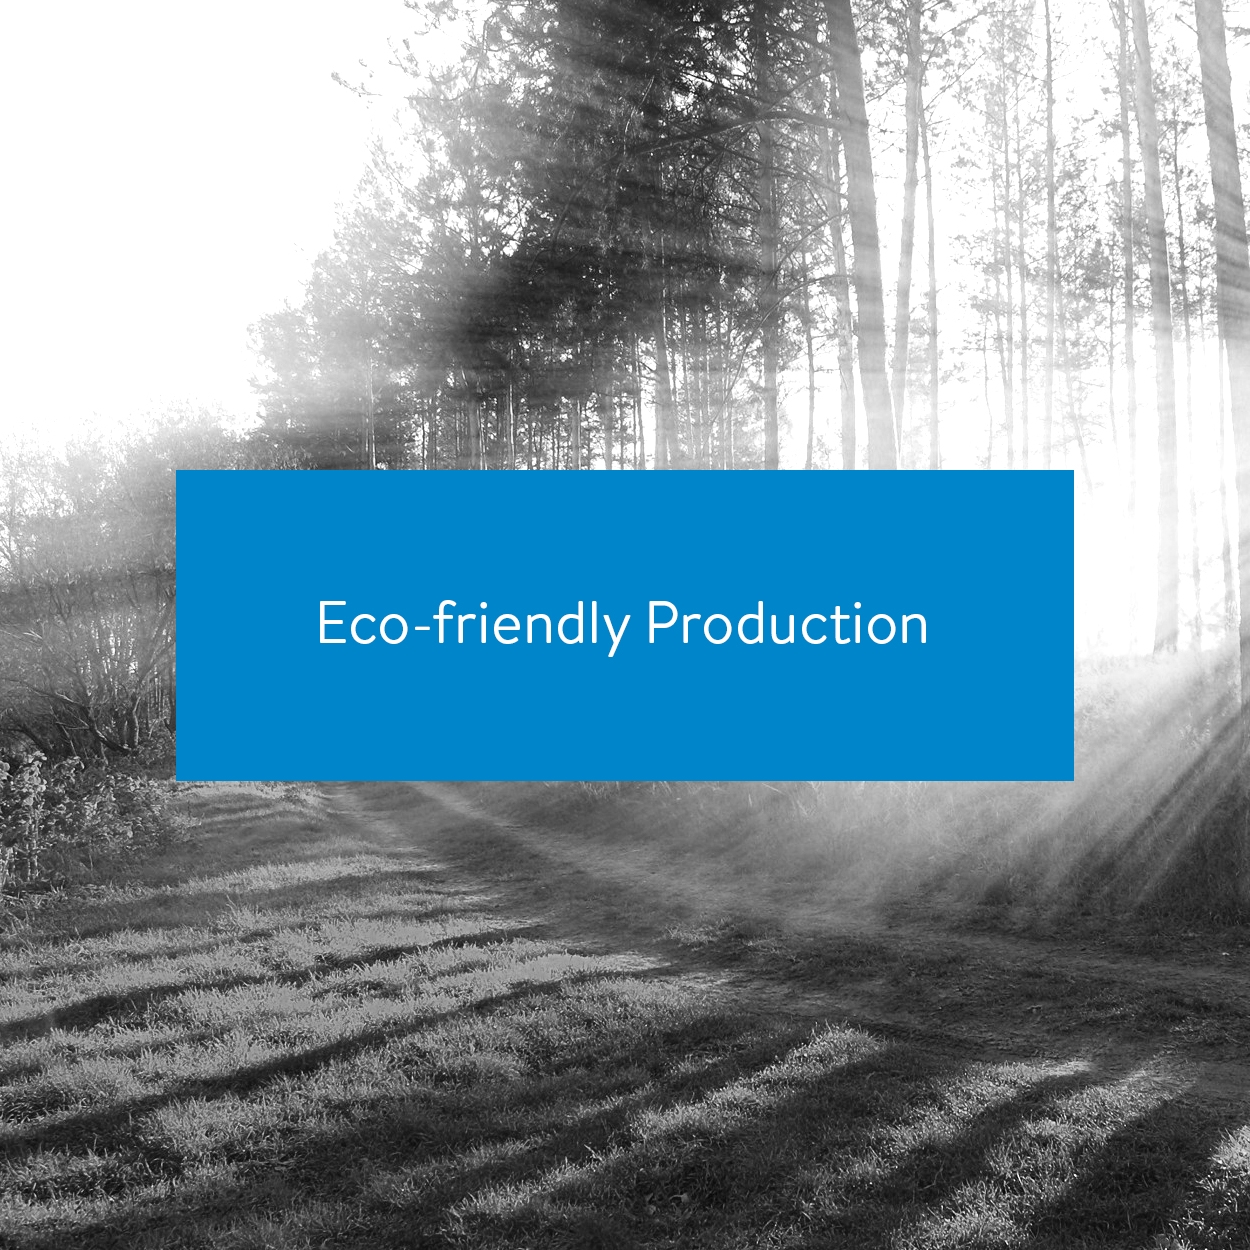 Eco-friendly production